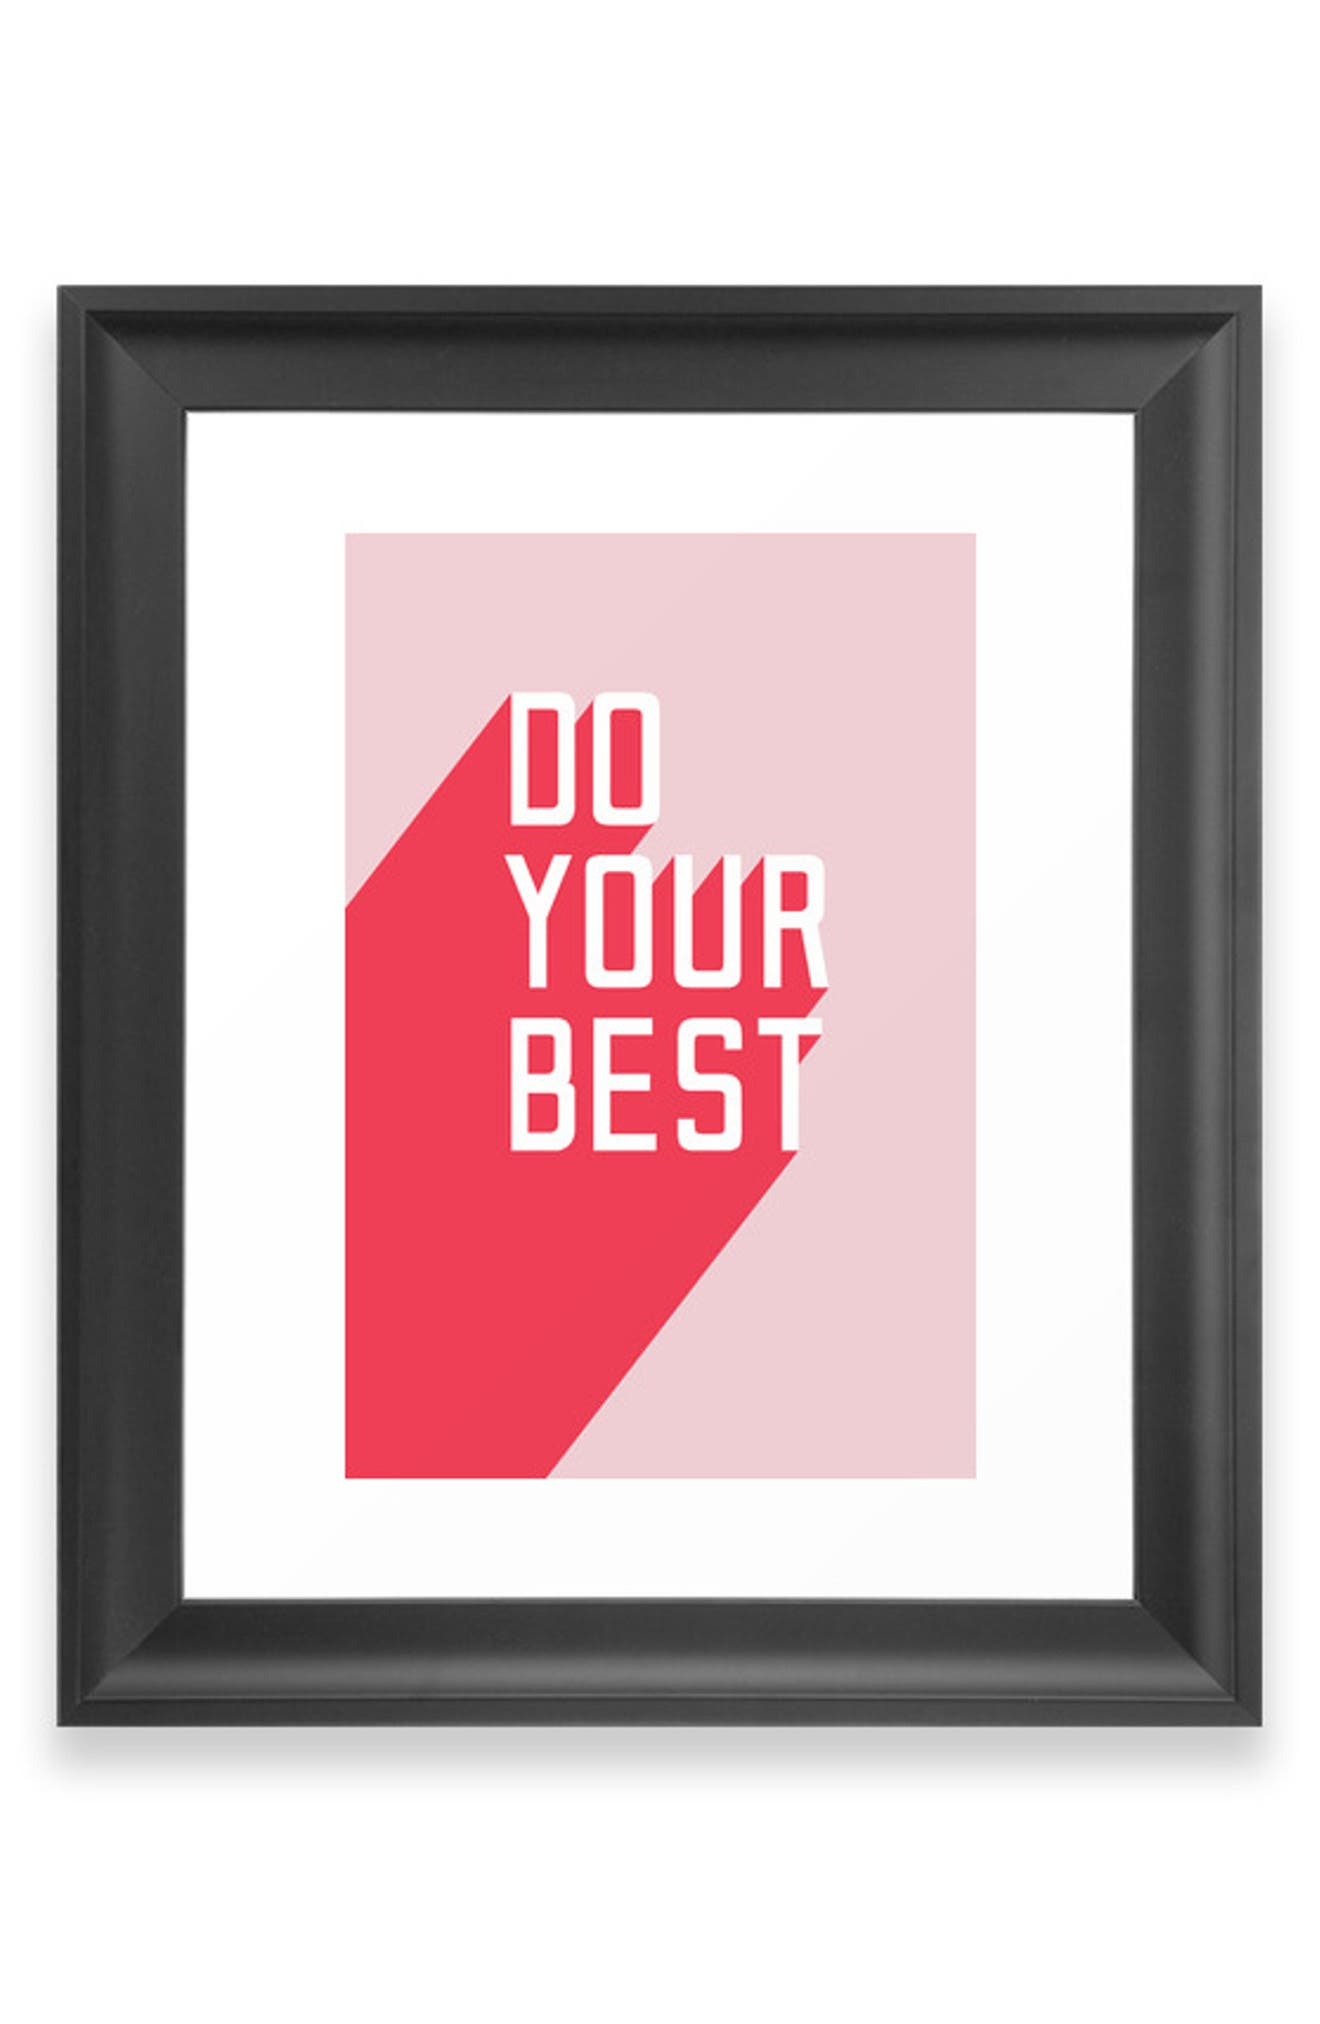 Inspirational lettering by Phirst takes center stage on a satin-finish art print available on its own or in a ready-to-hang frame. Style Name: Deny Designs Do Your Best Art Print. Style Number: 5867633. Available in stores.